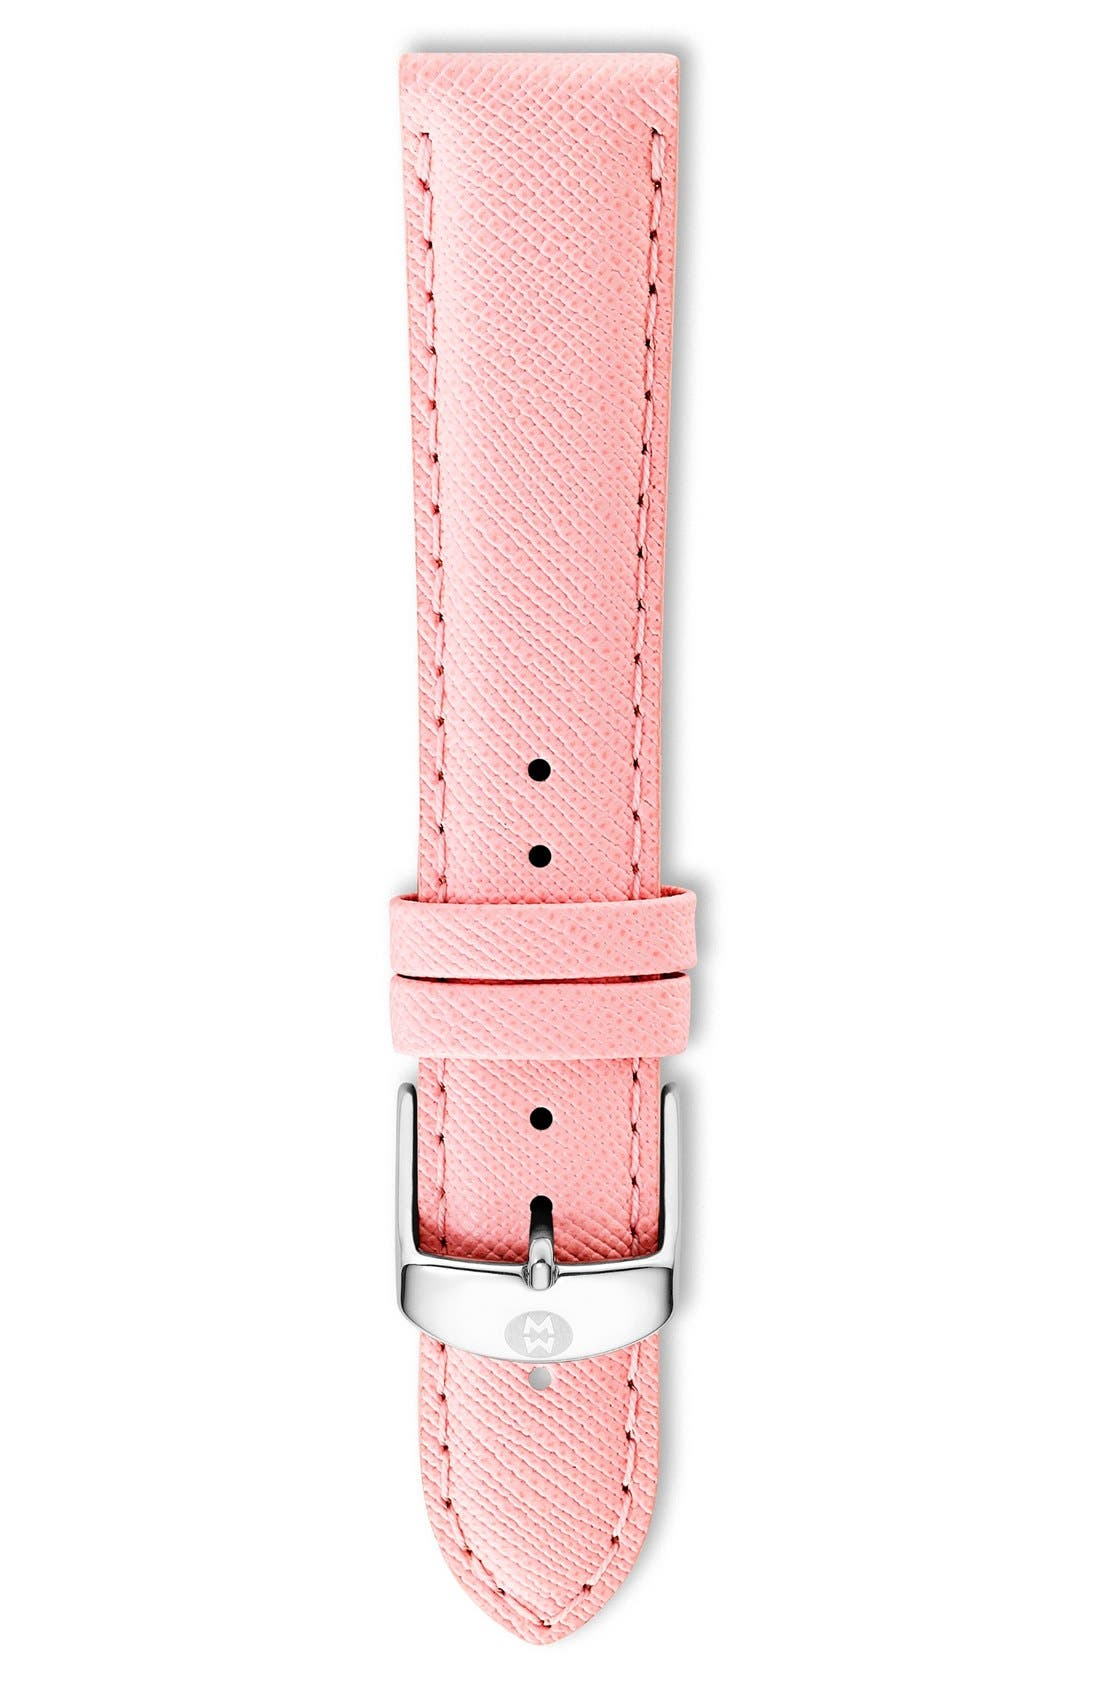 16mm Leather Watch Strap,                             Main thumbnail 16, color,